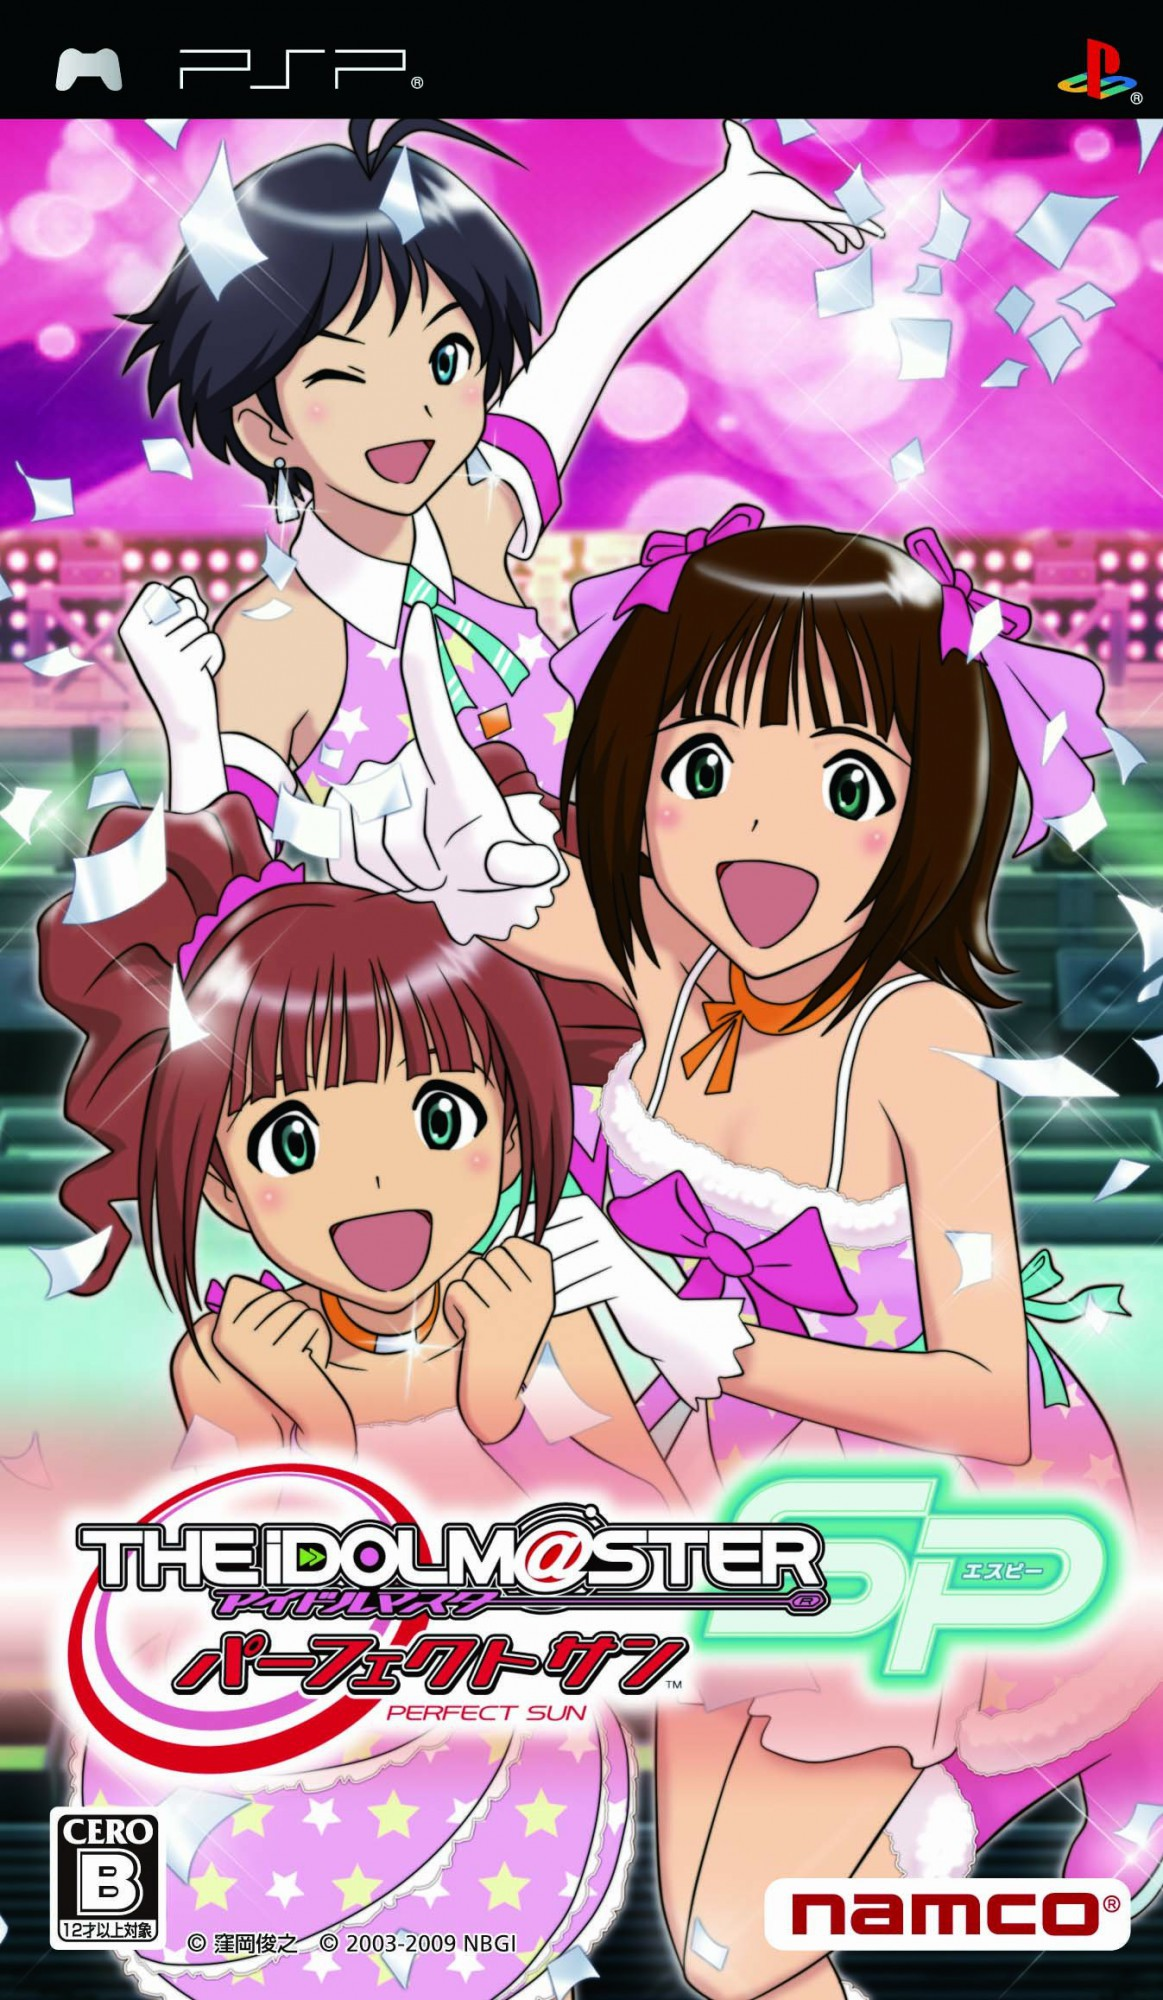 Idolm@ster SP: Perfect Sun